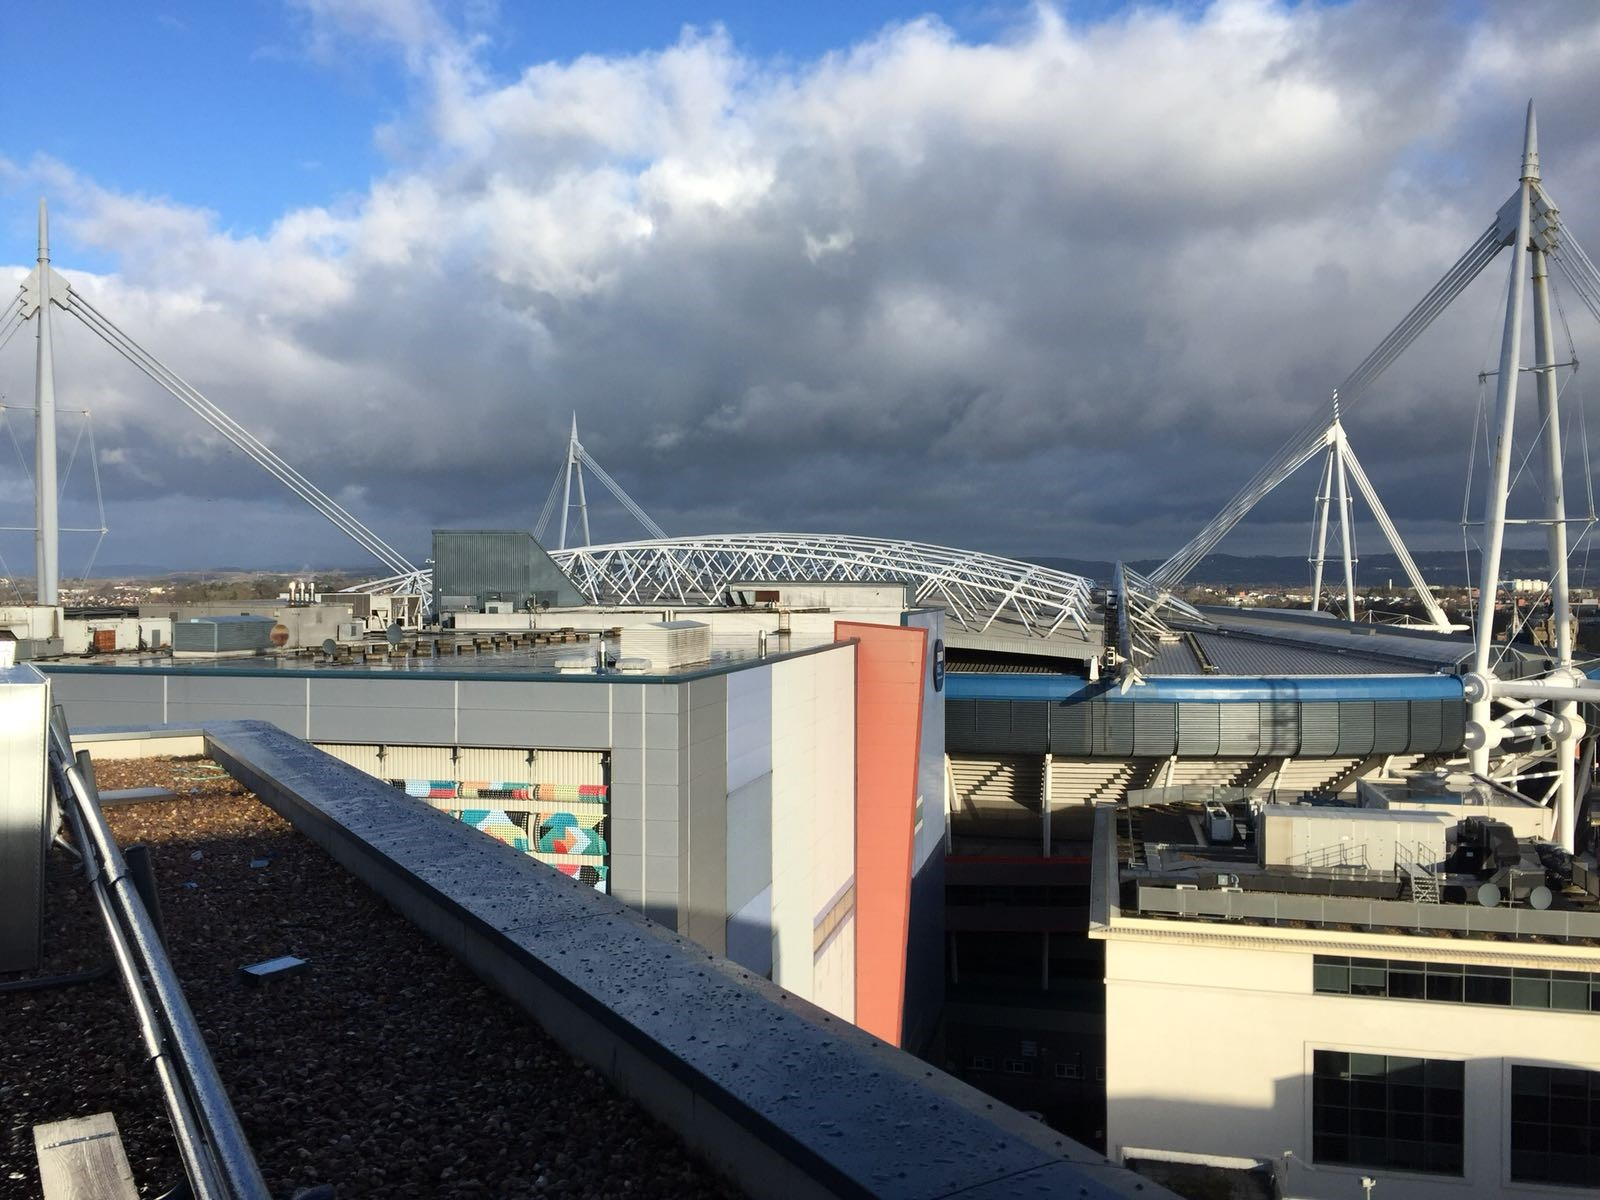 The view of Cardiff stadium from a industrial buildings flat roof